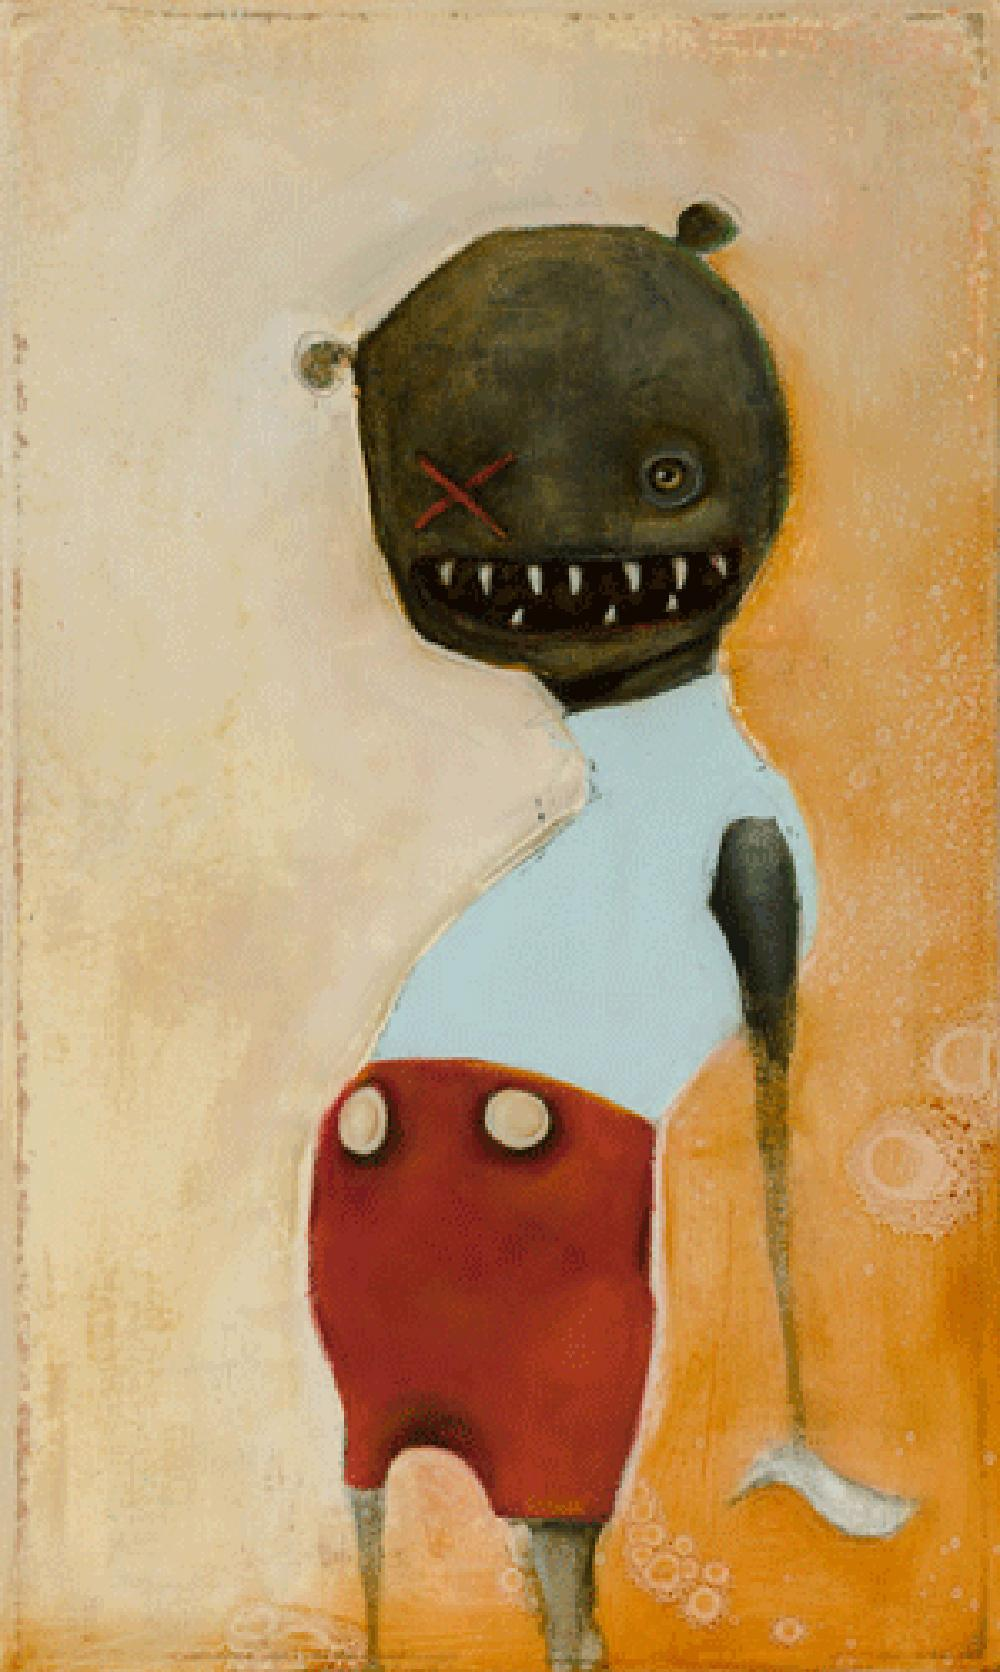 Jelly by Michele Mikesell, Oil on canvas, pop figurative whimsical painting